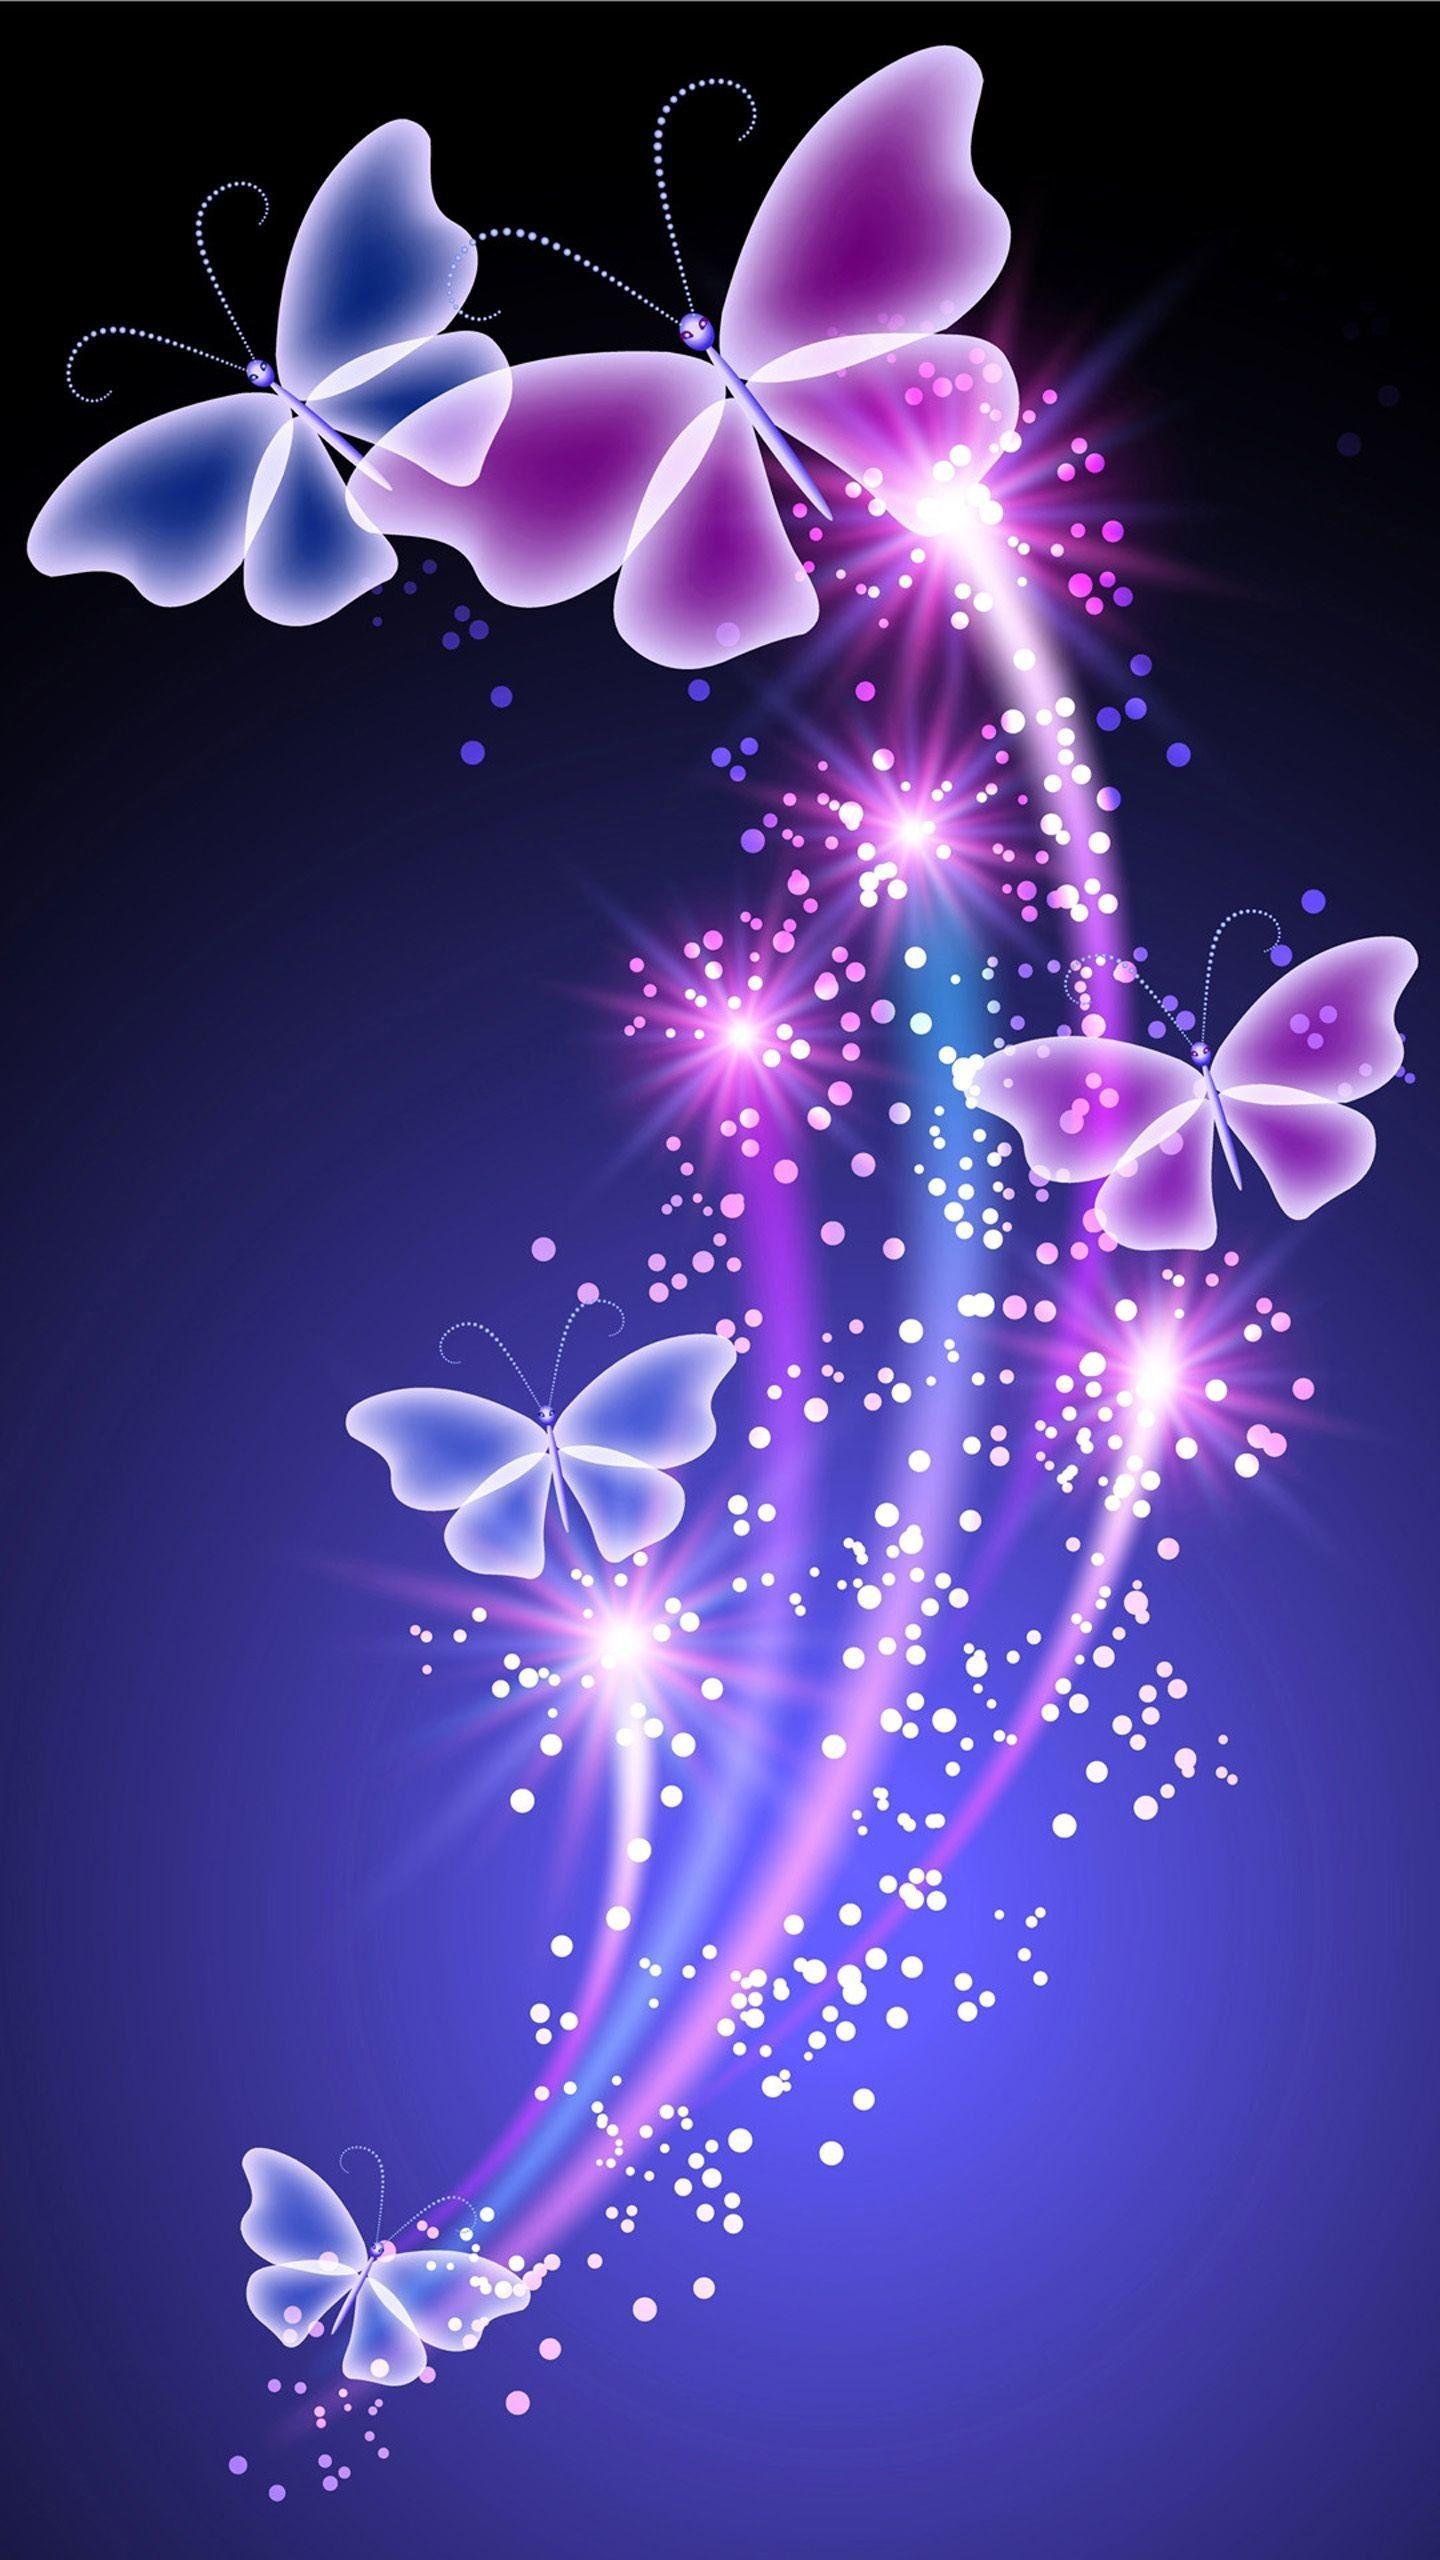 Free Butterfly Wallpapers For Android 64 Wallpapers Hd Wallpapers Butterfly Wallpaper Iphone Butterfly Background Flower Phone Wallpaper